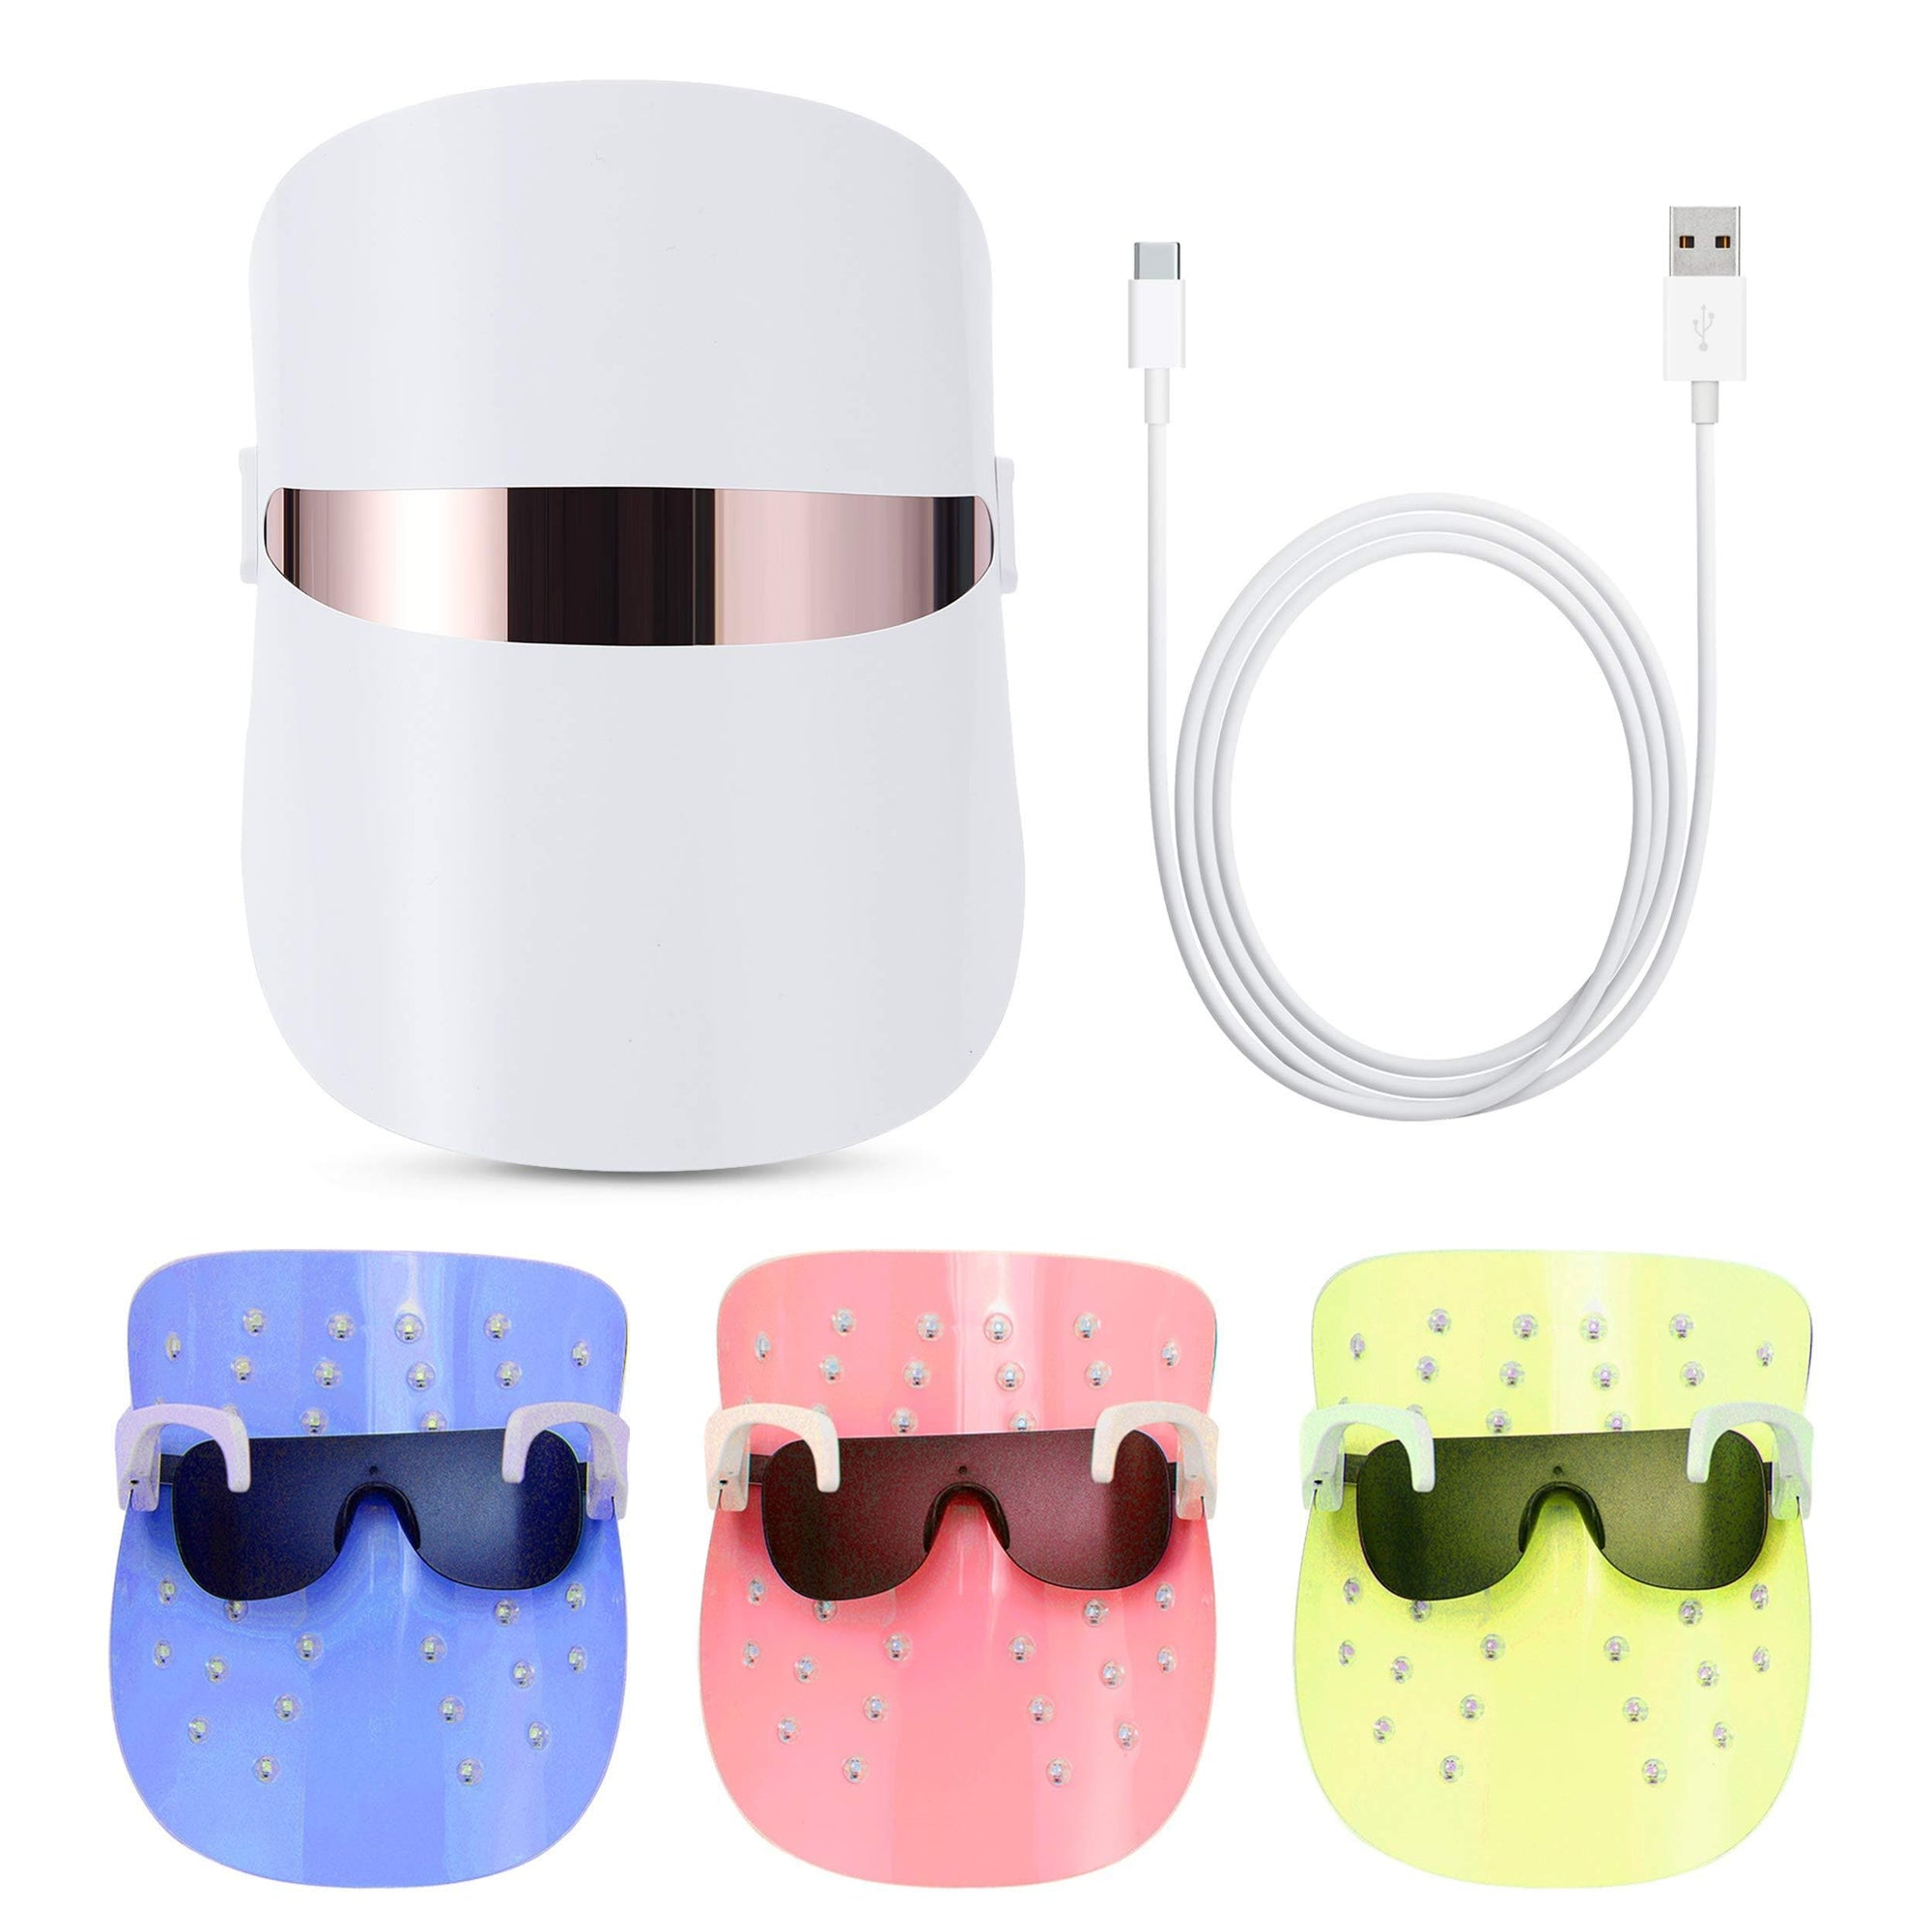 Red Light Therapy LED Face Mask 3 Color Clear Mask | LED Mask Therapy Facial Photon For Healthy Skin Rejuvenation